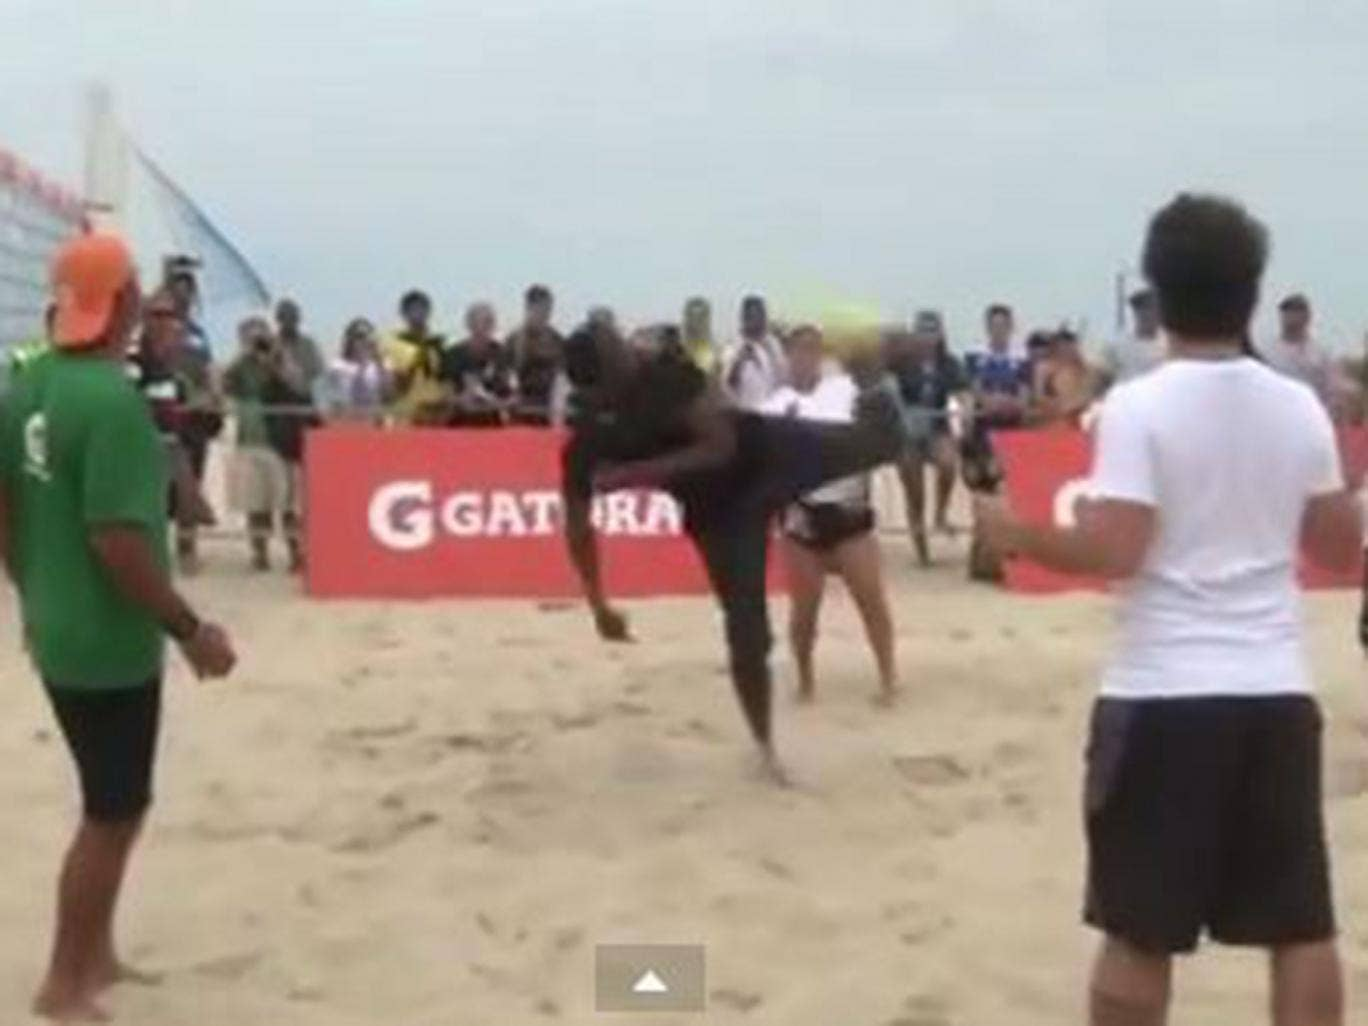 Usain Bolt shows off his skills during FootVolley game on Rio de Janeiro beach